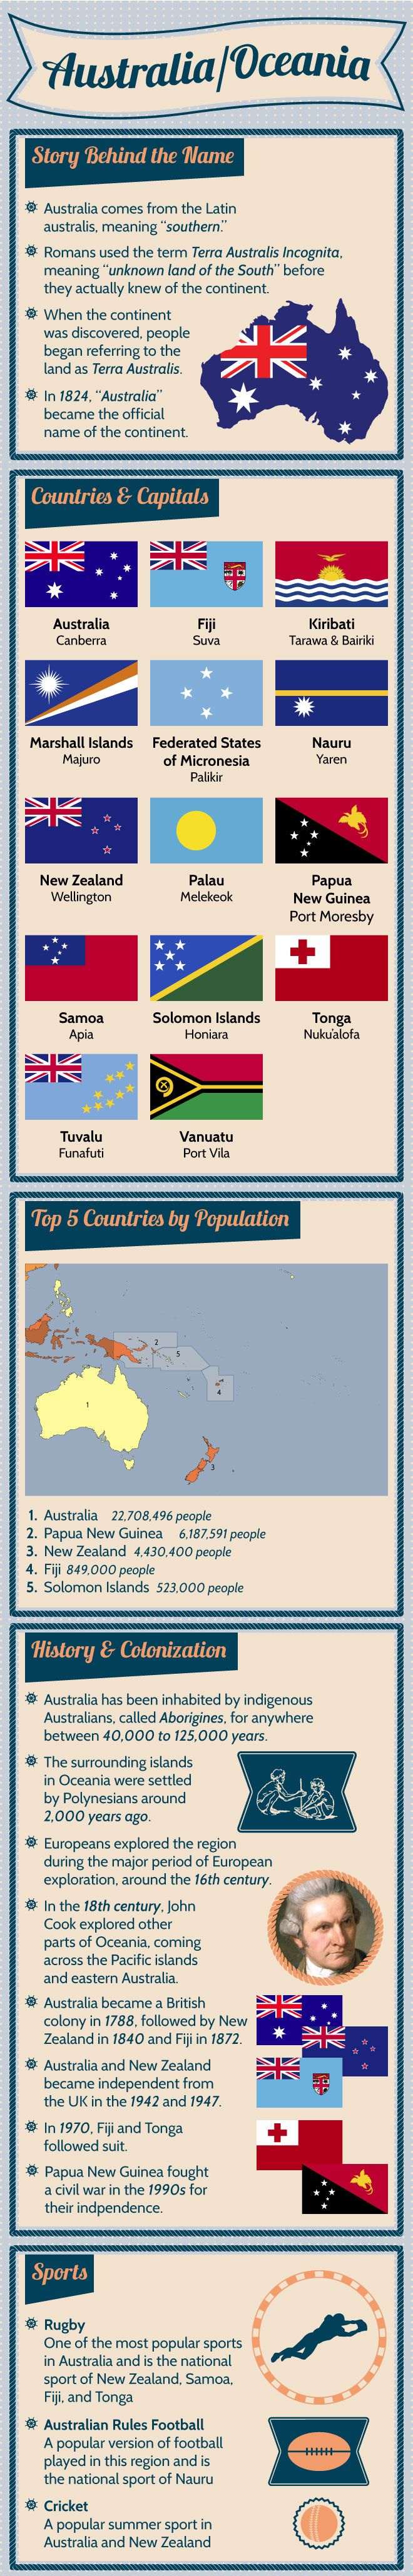 Infographic of Australia Fast Factshttp://www.mapsofworld.com/pages/fast-facts/infographic-of-australia-oceania-fast-facts/